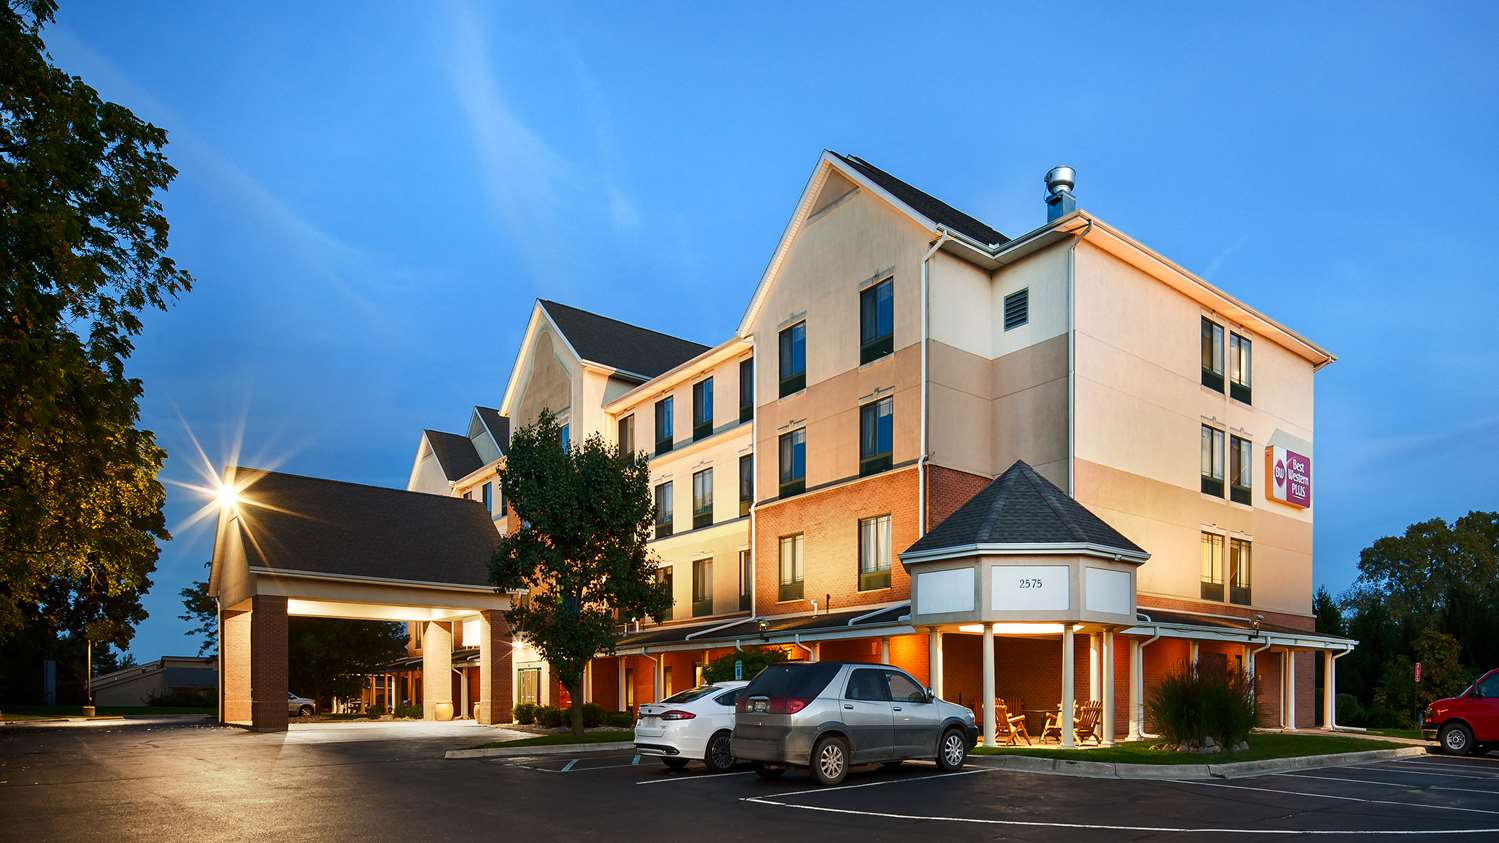 Hotels Near Western Michigan University In Kalamazoo Mi